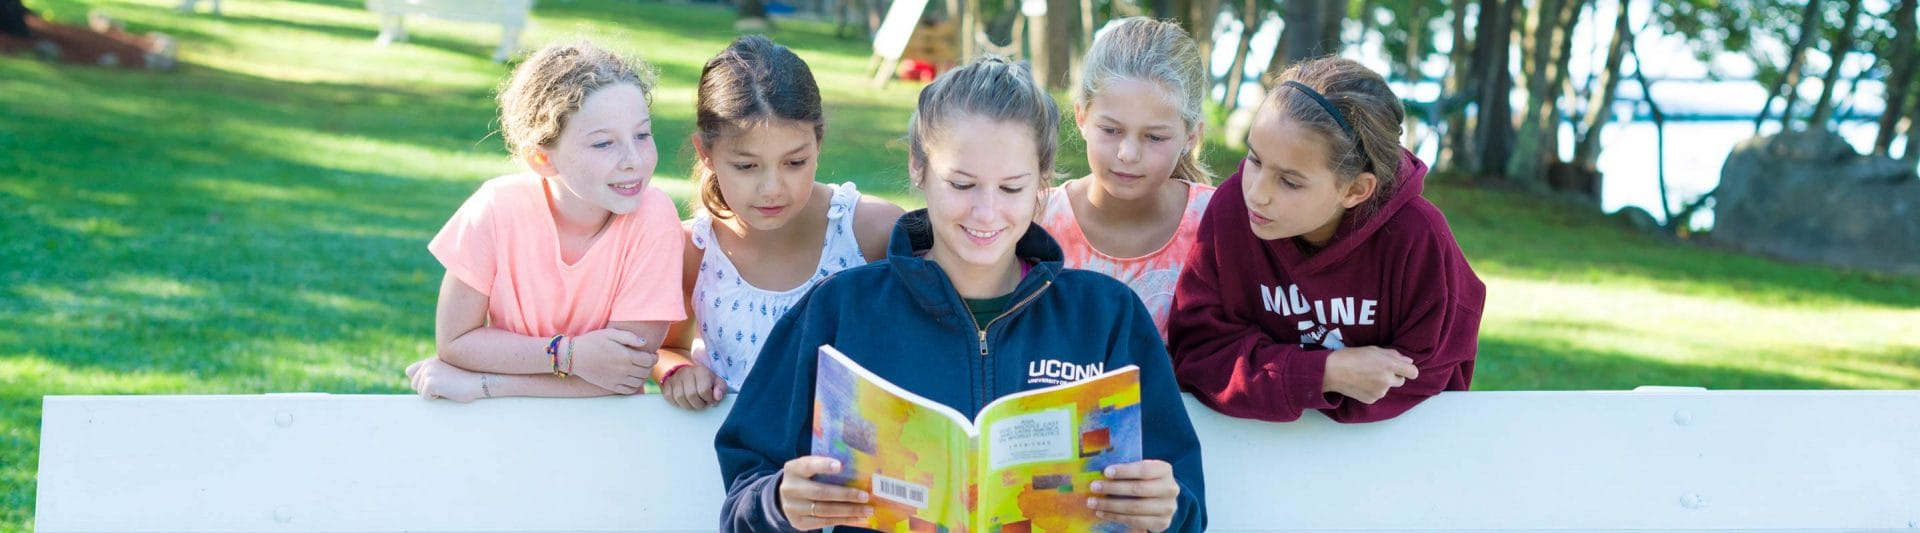 girl counselor reading while four young girls look over her shoulder